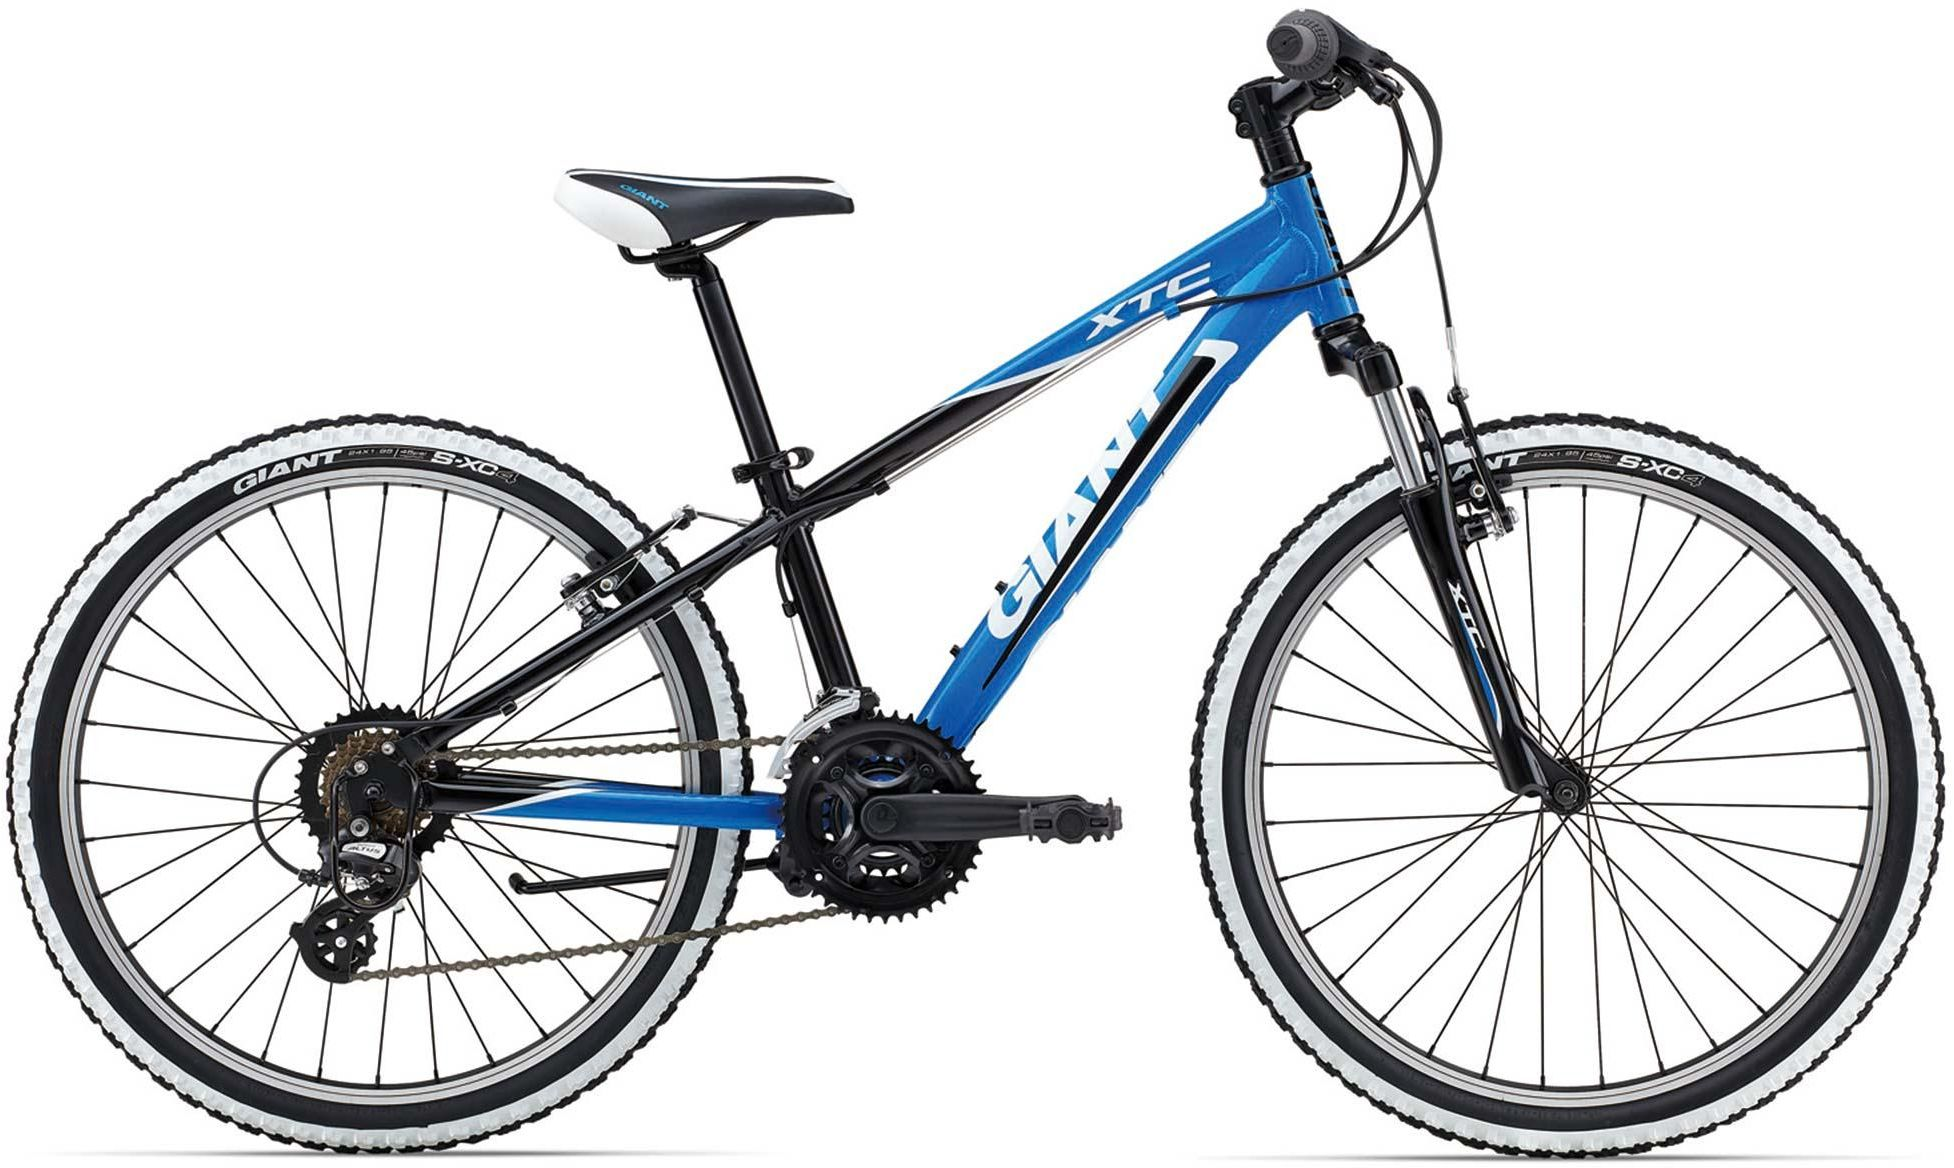 Giant Xtc Jr 1 24 2013 Review The Bike List